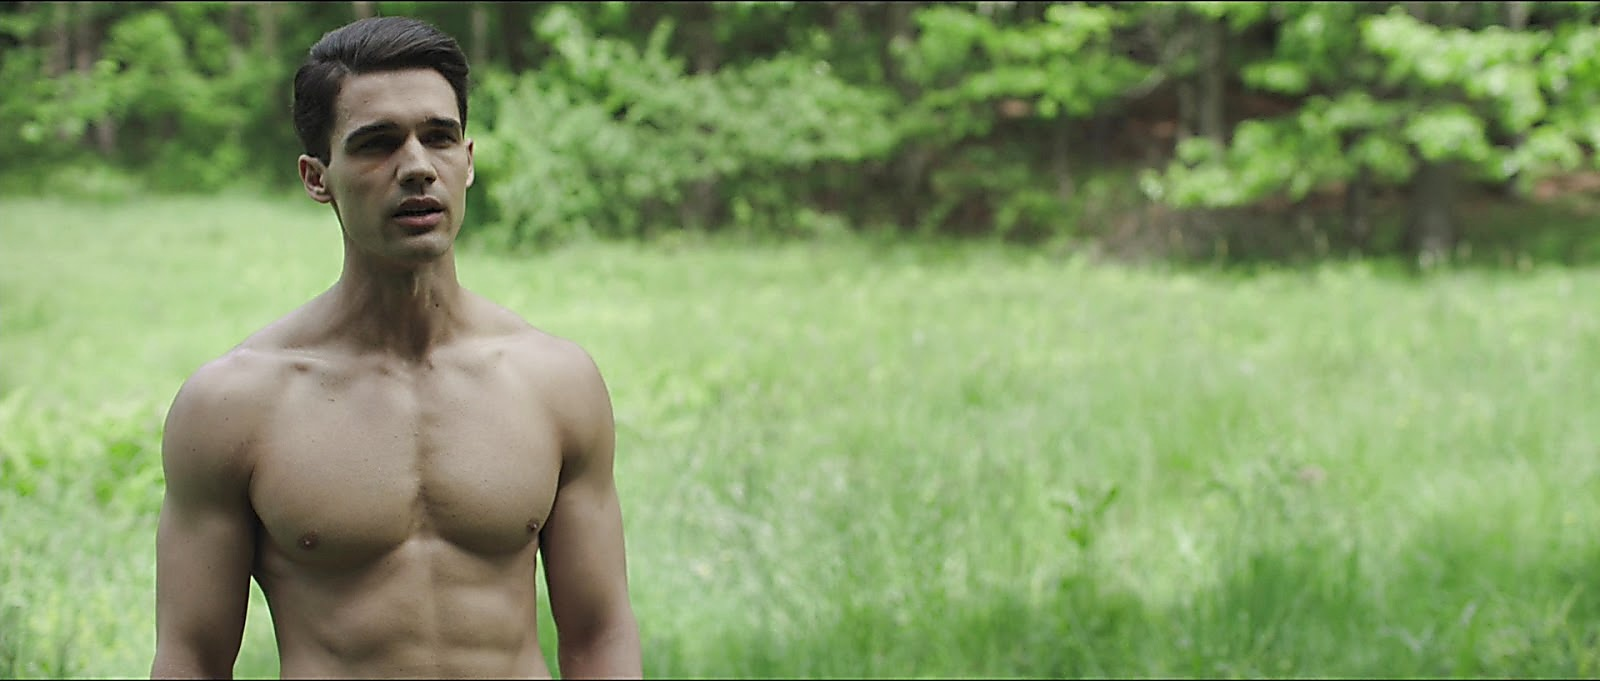 Steven Strait sexy shirtless scene May 14, 2019, 10am